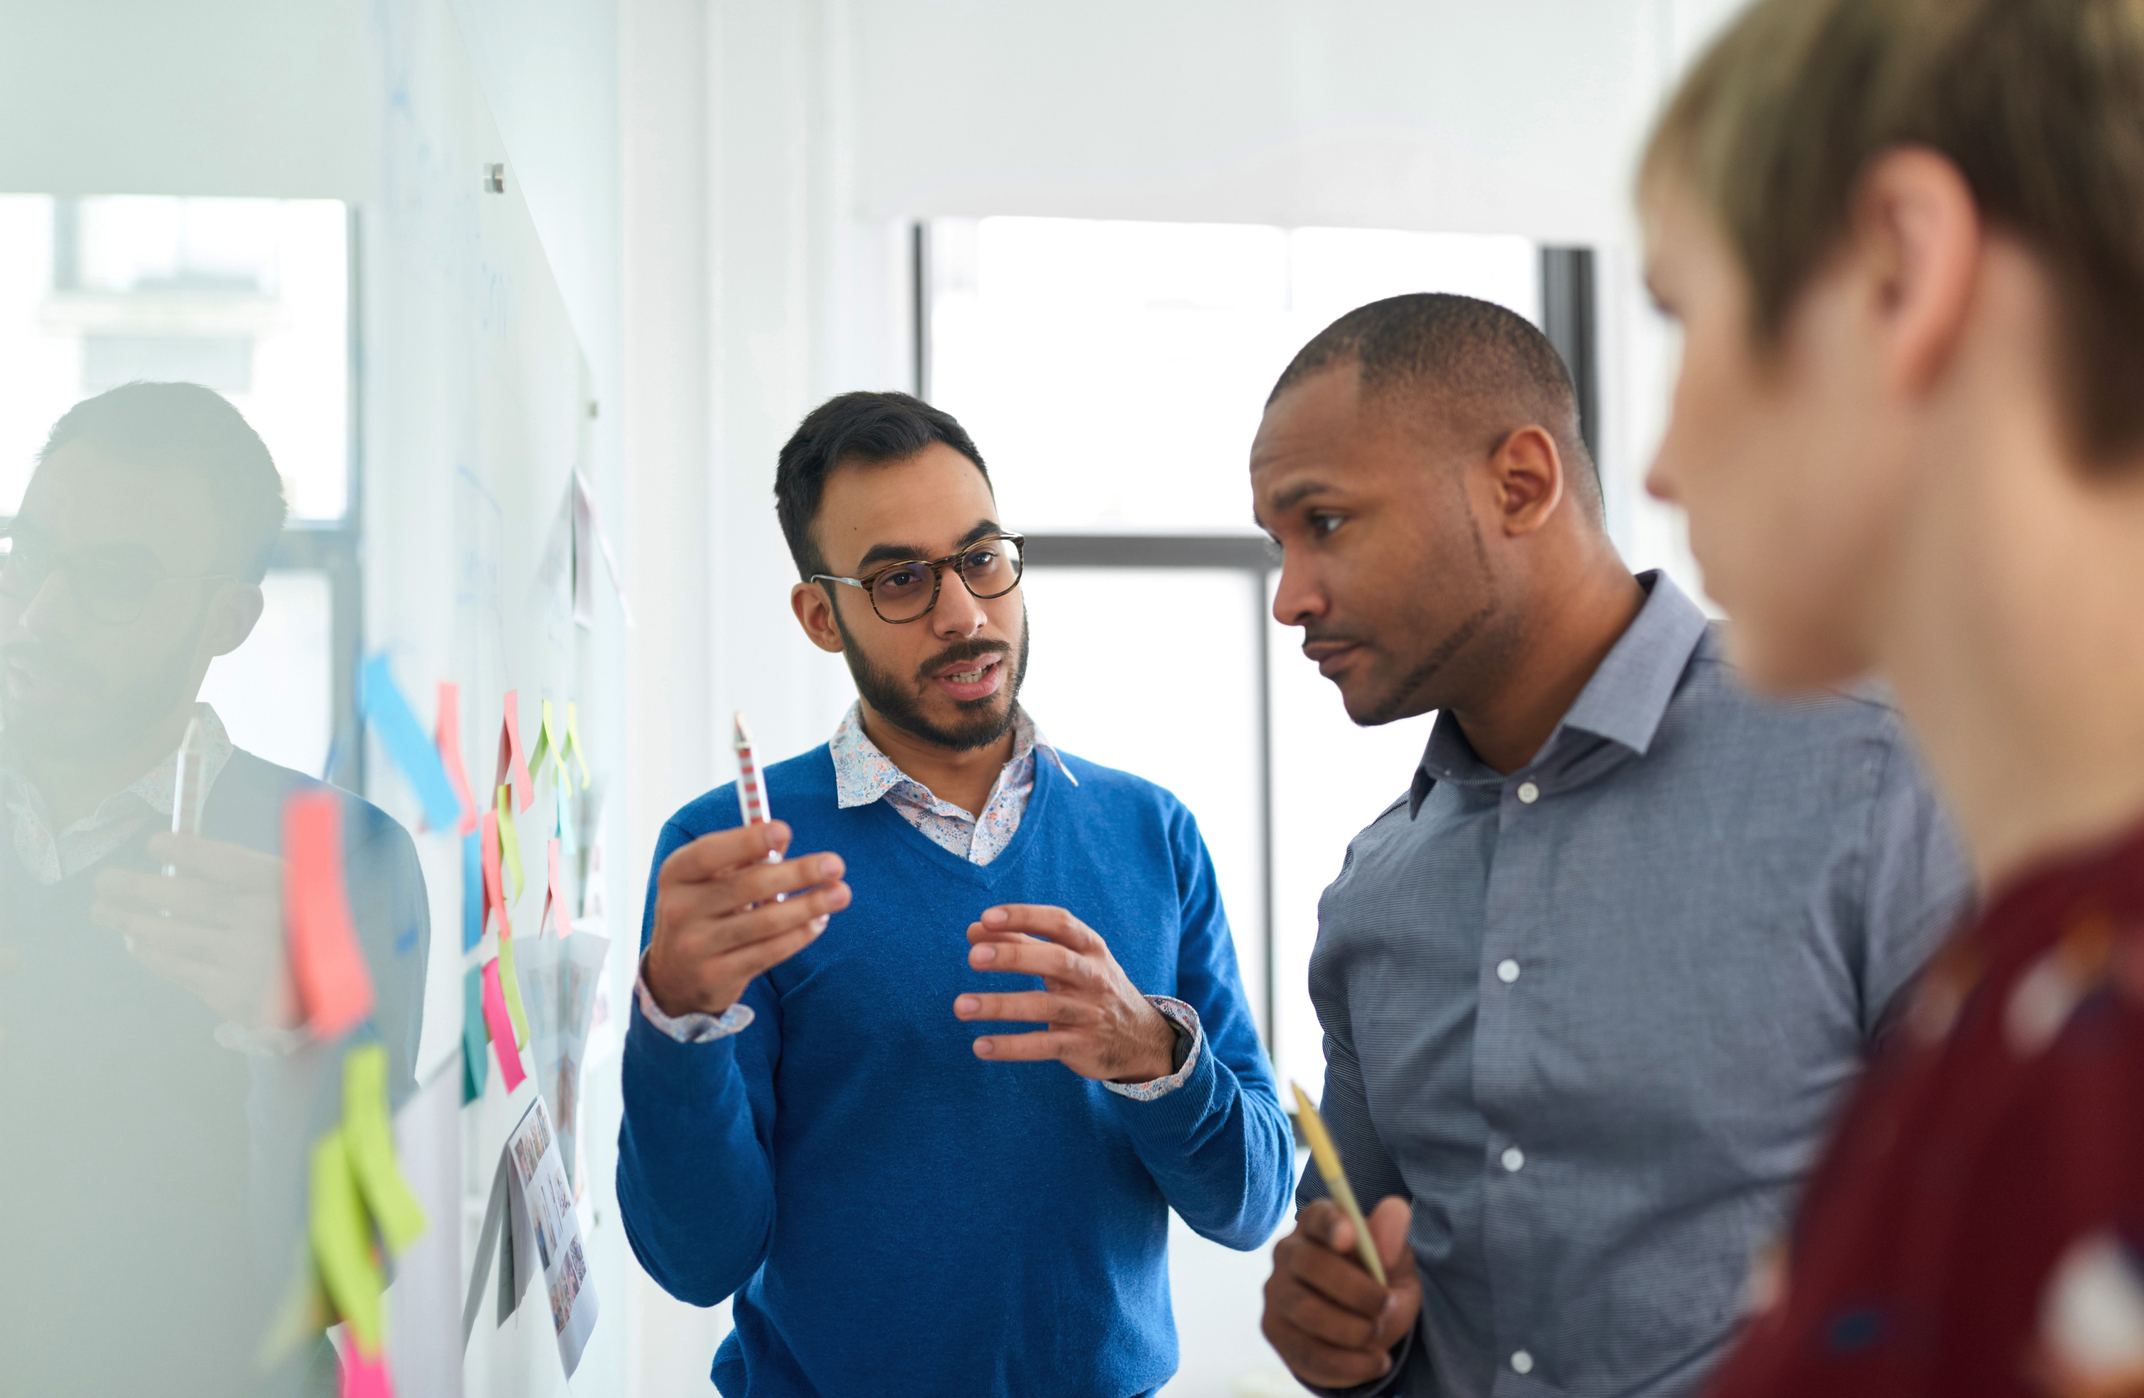 Stock photo of three colleagues looking at white board on the wall. One is holding a marker and explaining a concept while the others look on